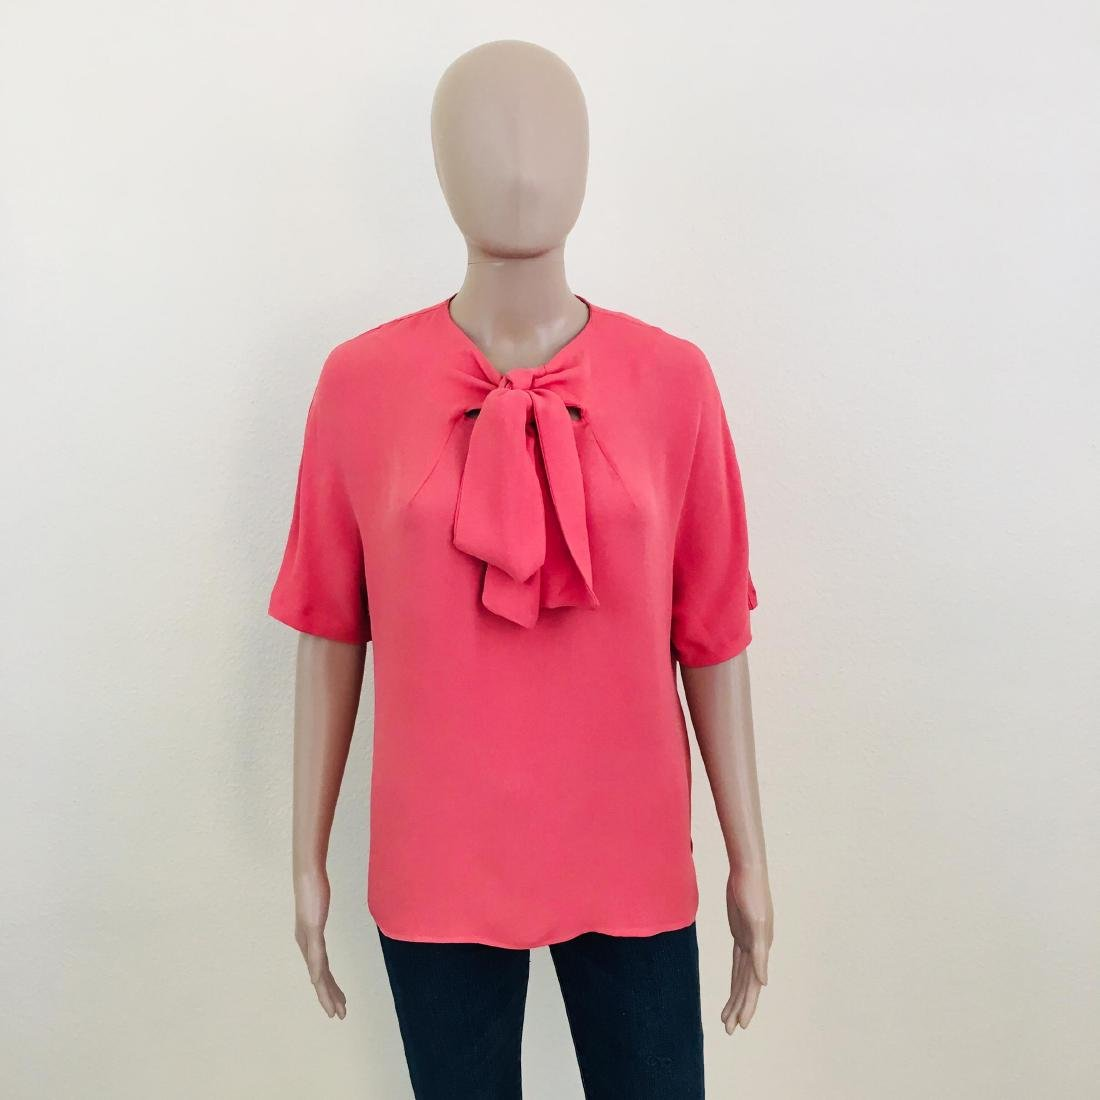 New Women's ZARA Top Blouse Size S